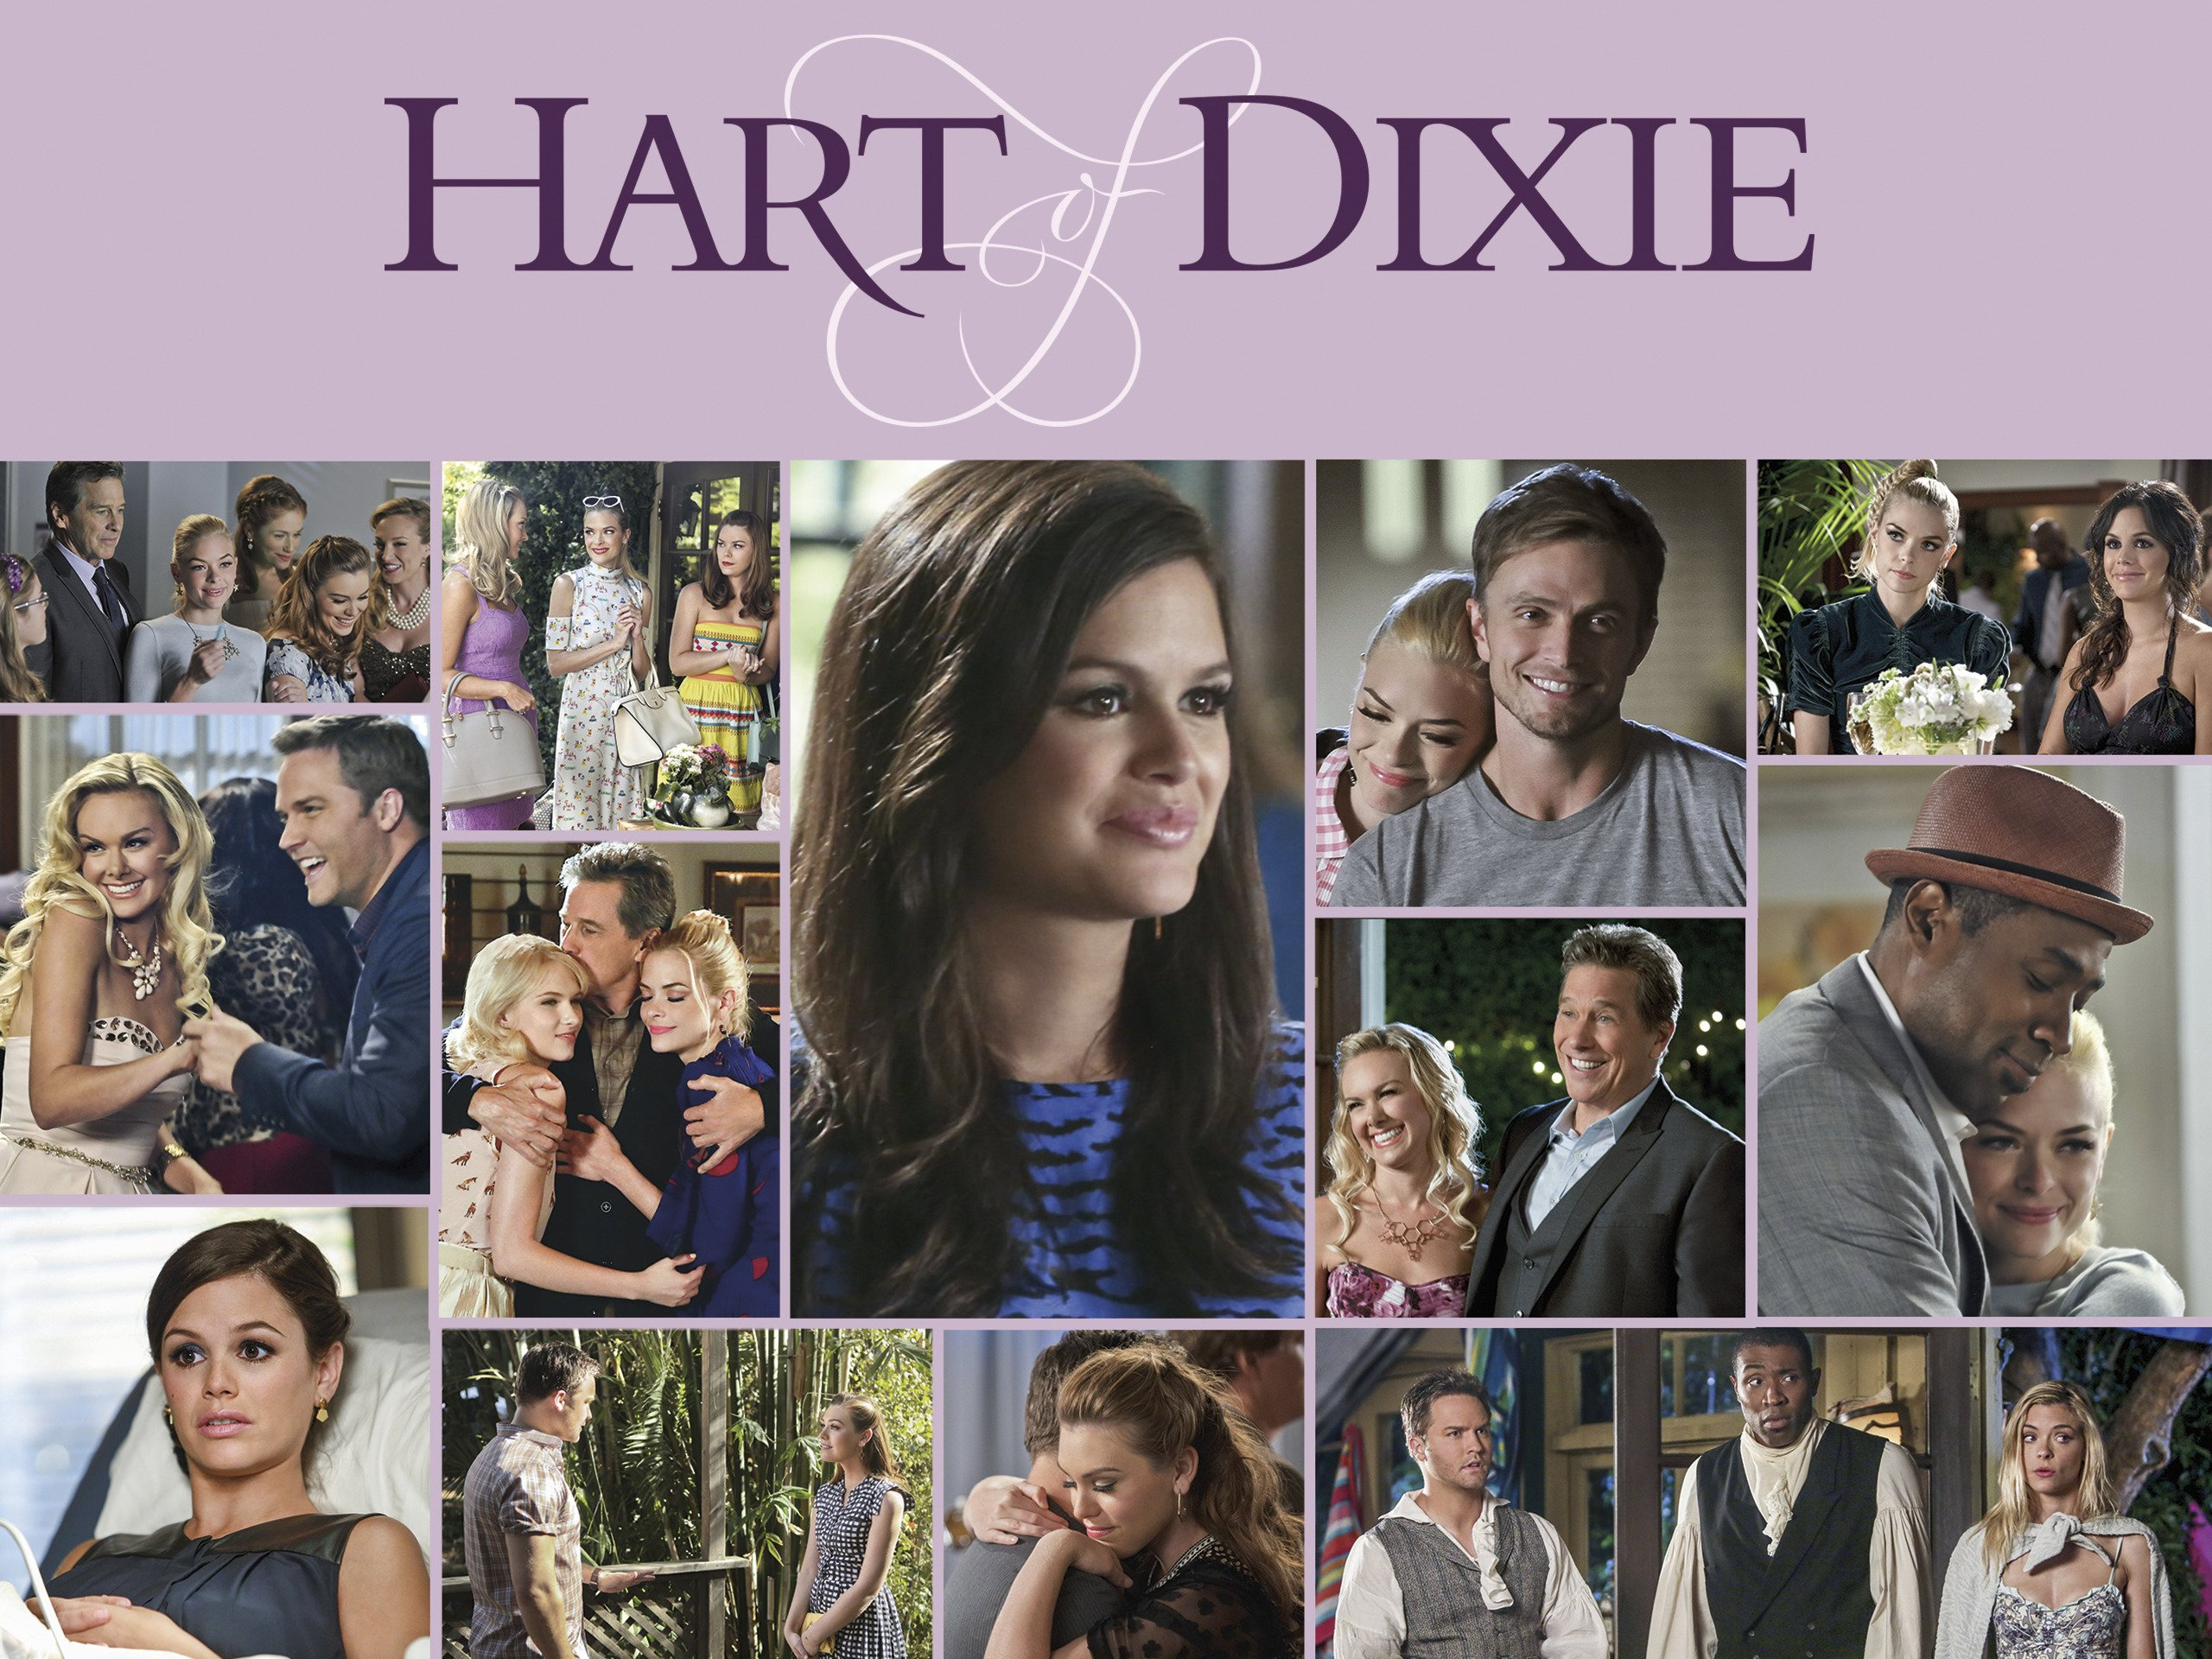 Amazon.de: Hart of Dixie - Staffel 4 ansehen | Prime Video